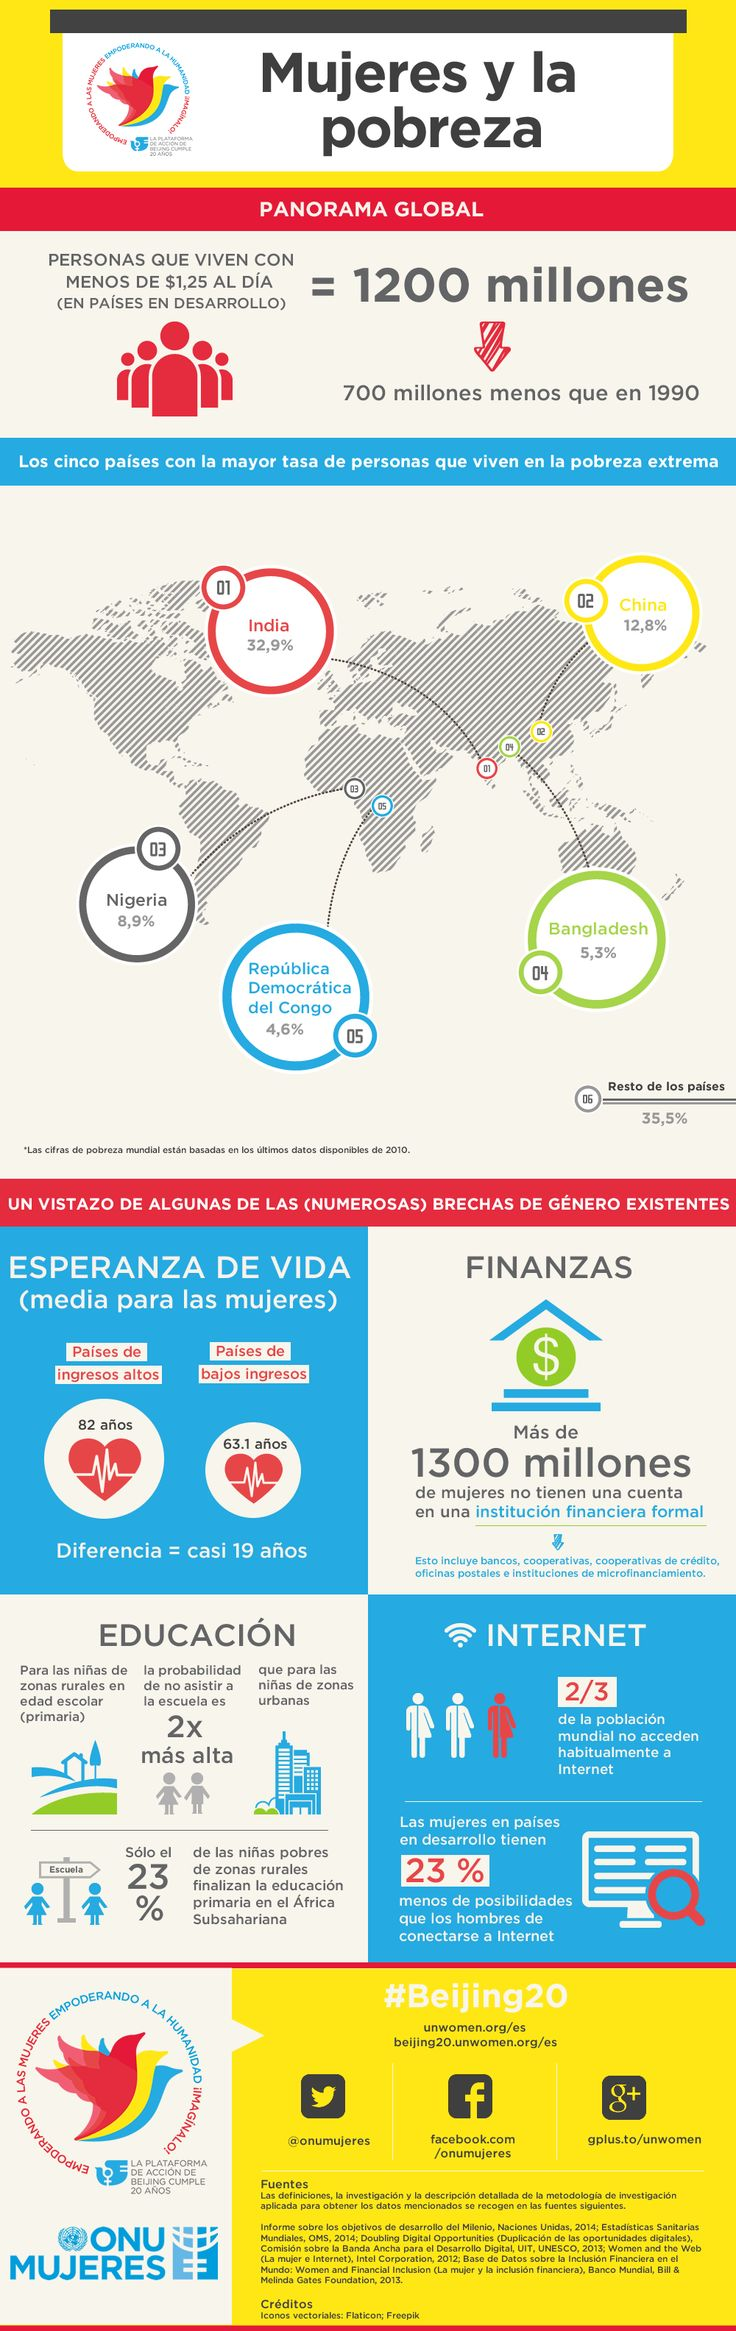 best images about espa ntilde ol spanish learning infographic women and poverty what is the effect of poverty on girls education check out this infographic